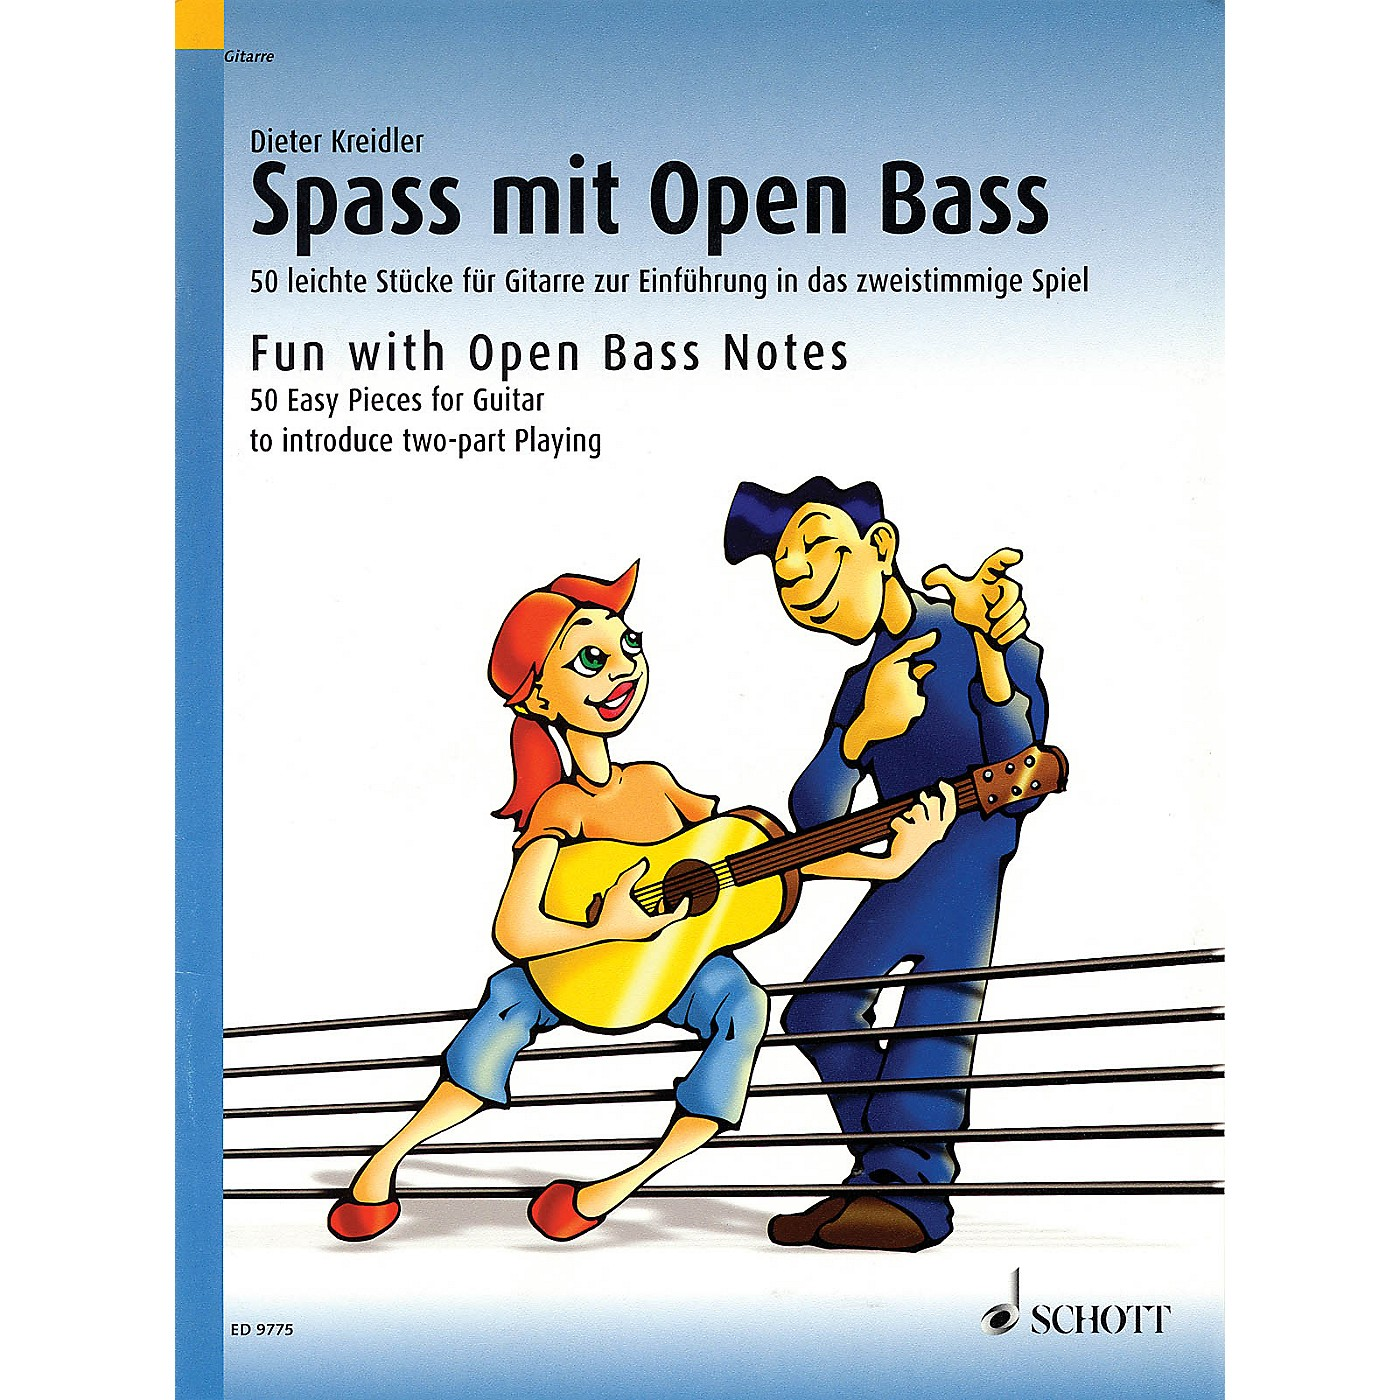 Schott Fun With Open Bass Notes (50 Easy Pieces for Guitar to introduce two-part playing) Schott Series thumbnail